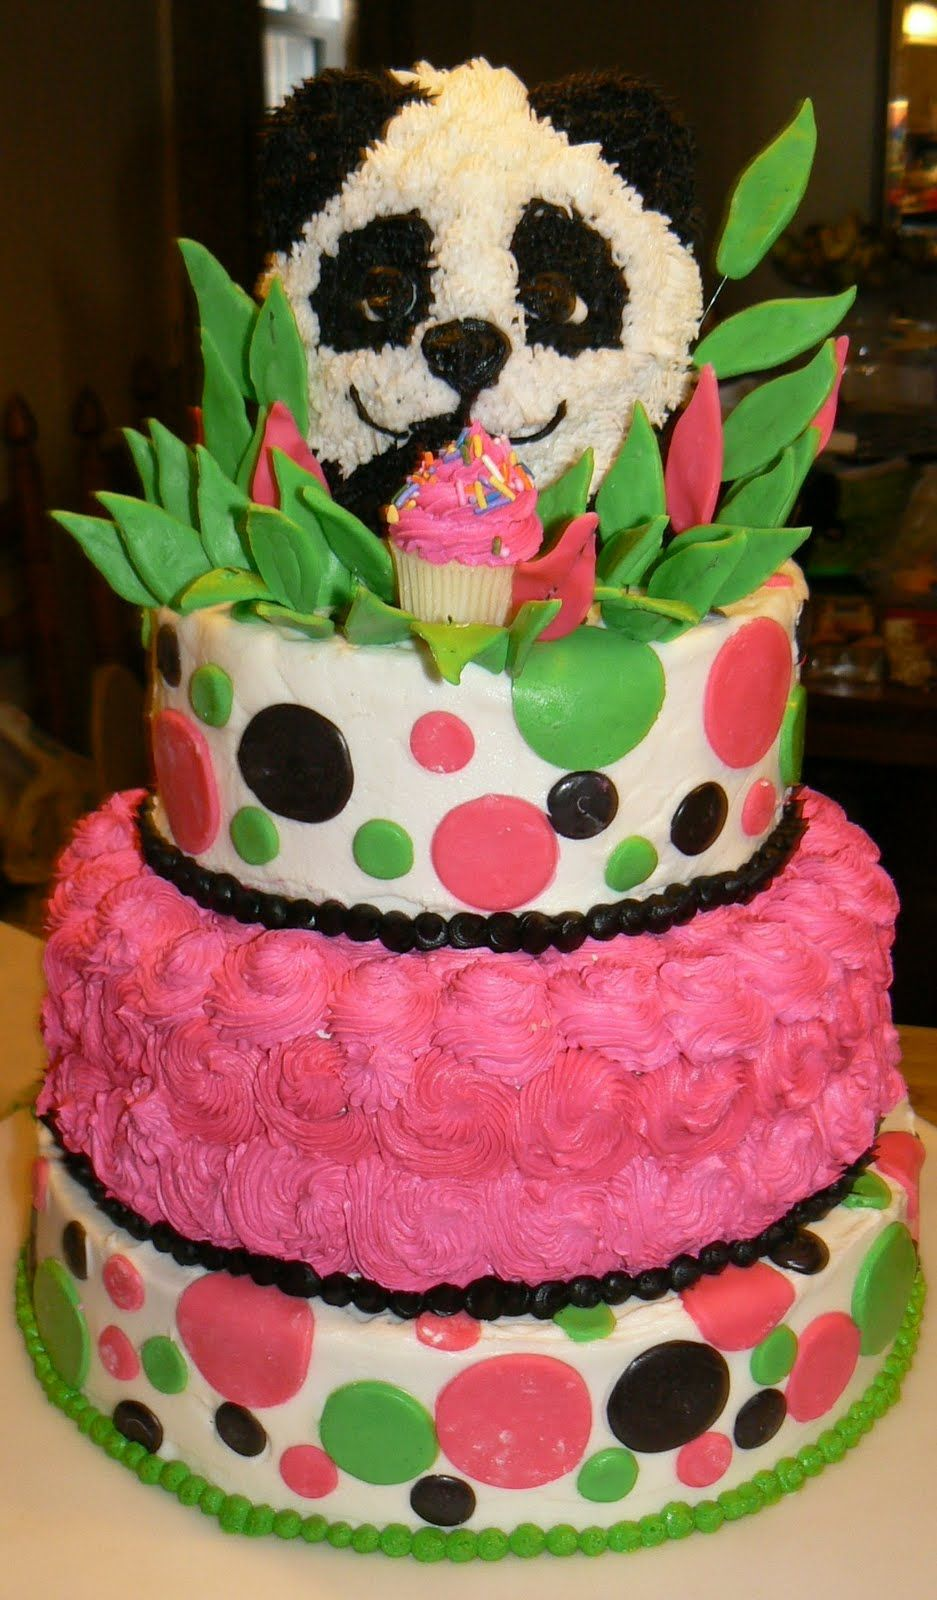 Birthday Cake Designs Love : Panda Cakes on Pinterest Panda Bear Cake, Noddy Cake and ...